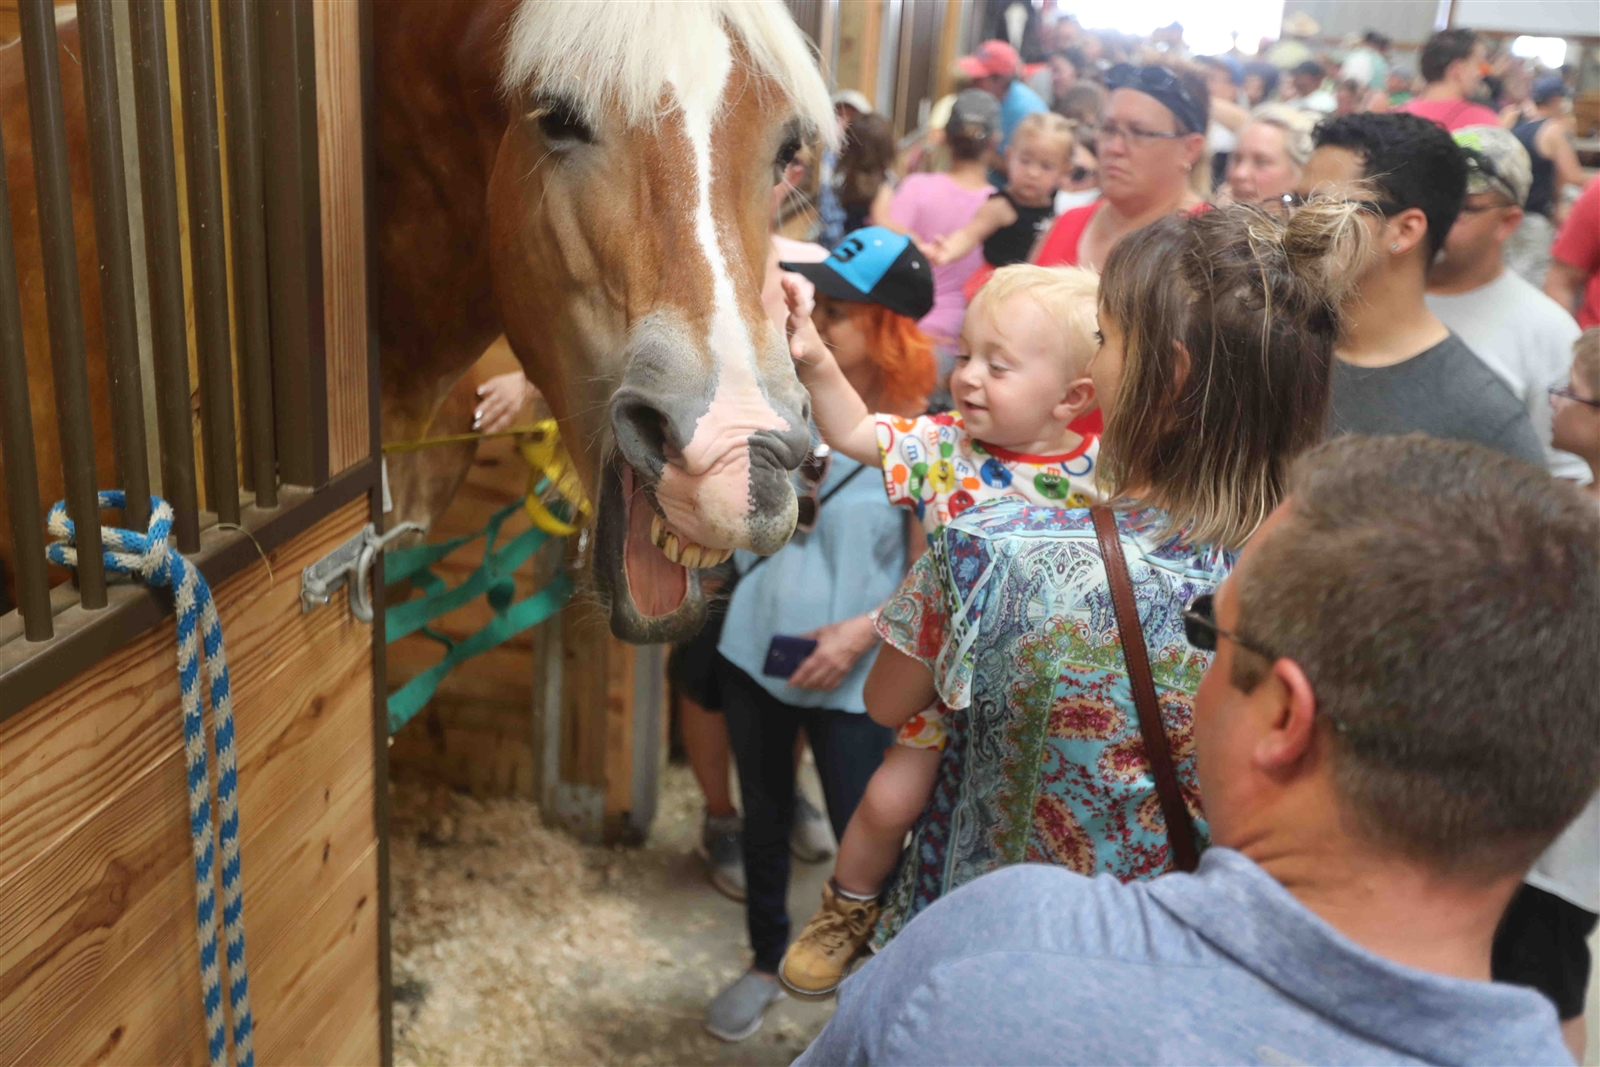 Sunday's good weather brought droves of pleasure-seekers to the Erie County Fair, which hosted a ceremony honoring veterans and various equestrian competitions.